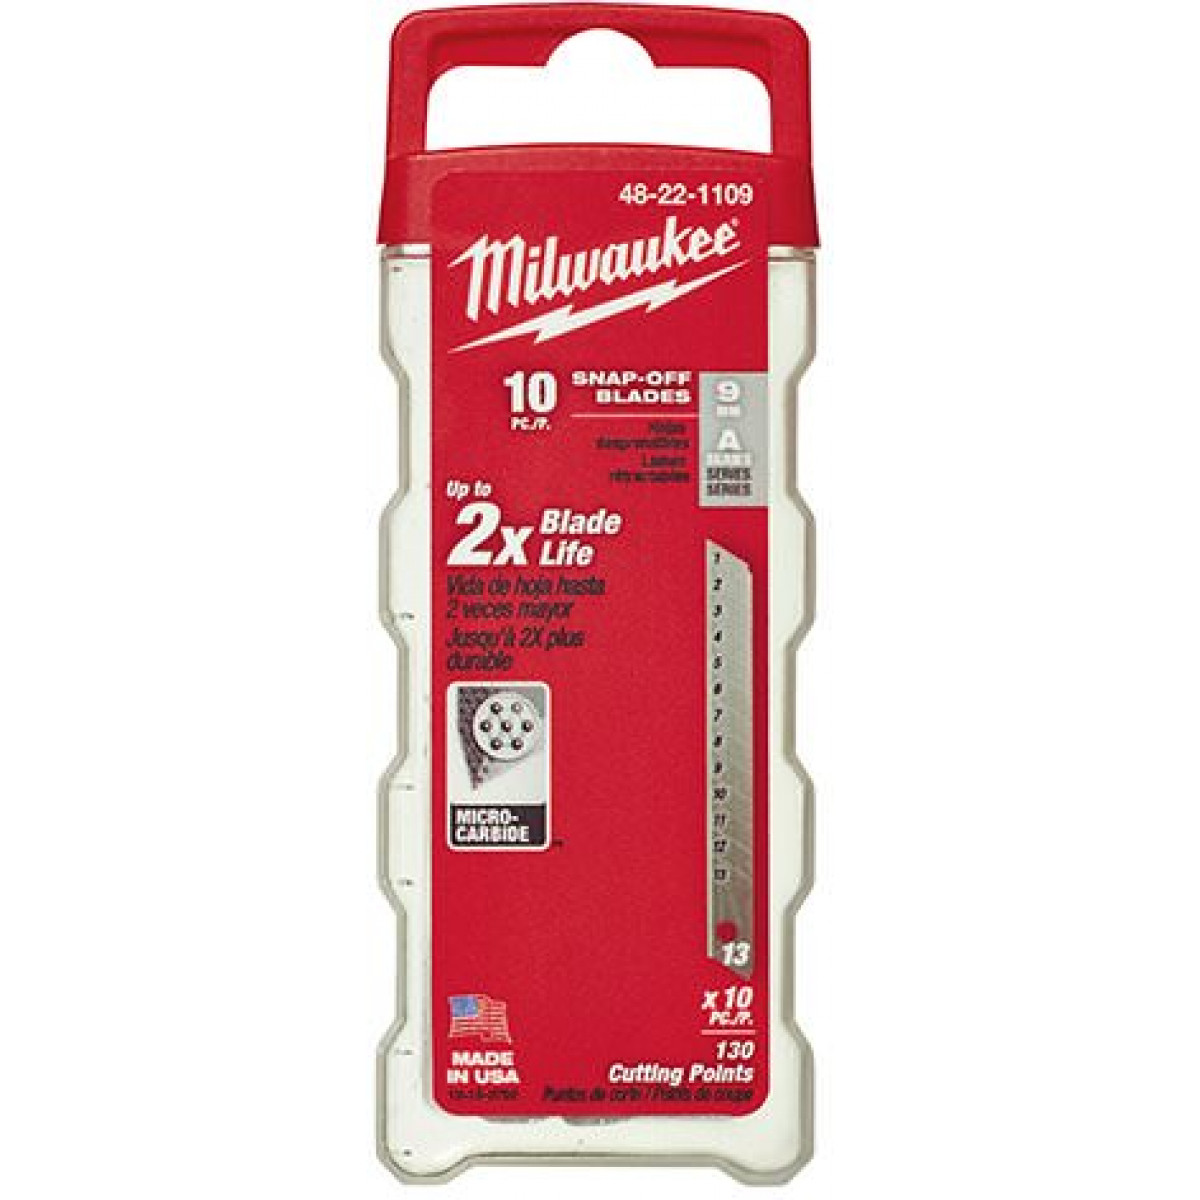 Milwaukee® 48-22-1109 10-Piece General Purpose Utility Knife Blade With Dispenser, Micro Carbide Metal, Snap-Off, 4-7/8 in L x 9 mm W Blade, Compatible With: Milwaukee® Most Standard Snap-Off Utility Knives, 0.015 in THK